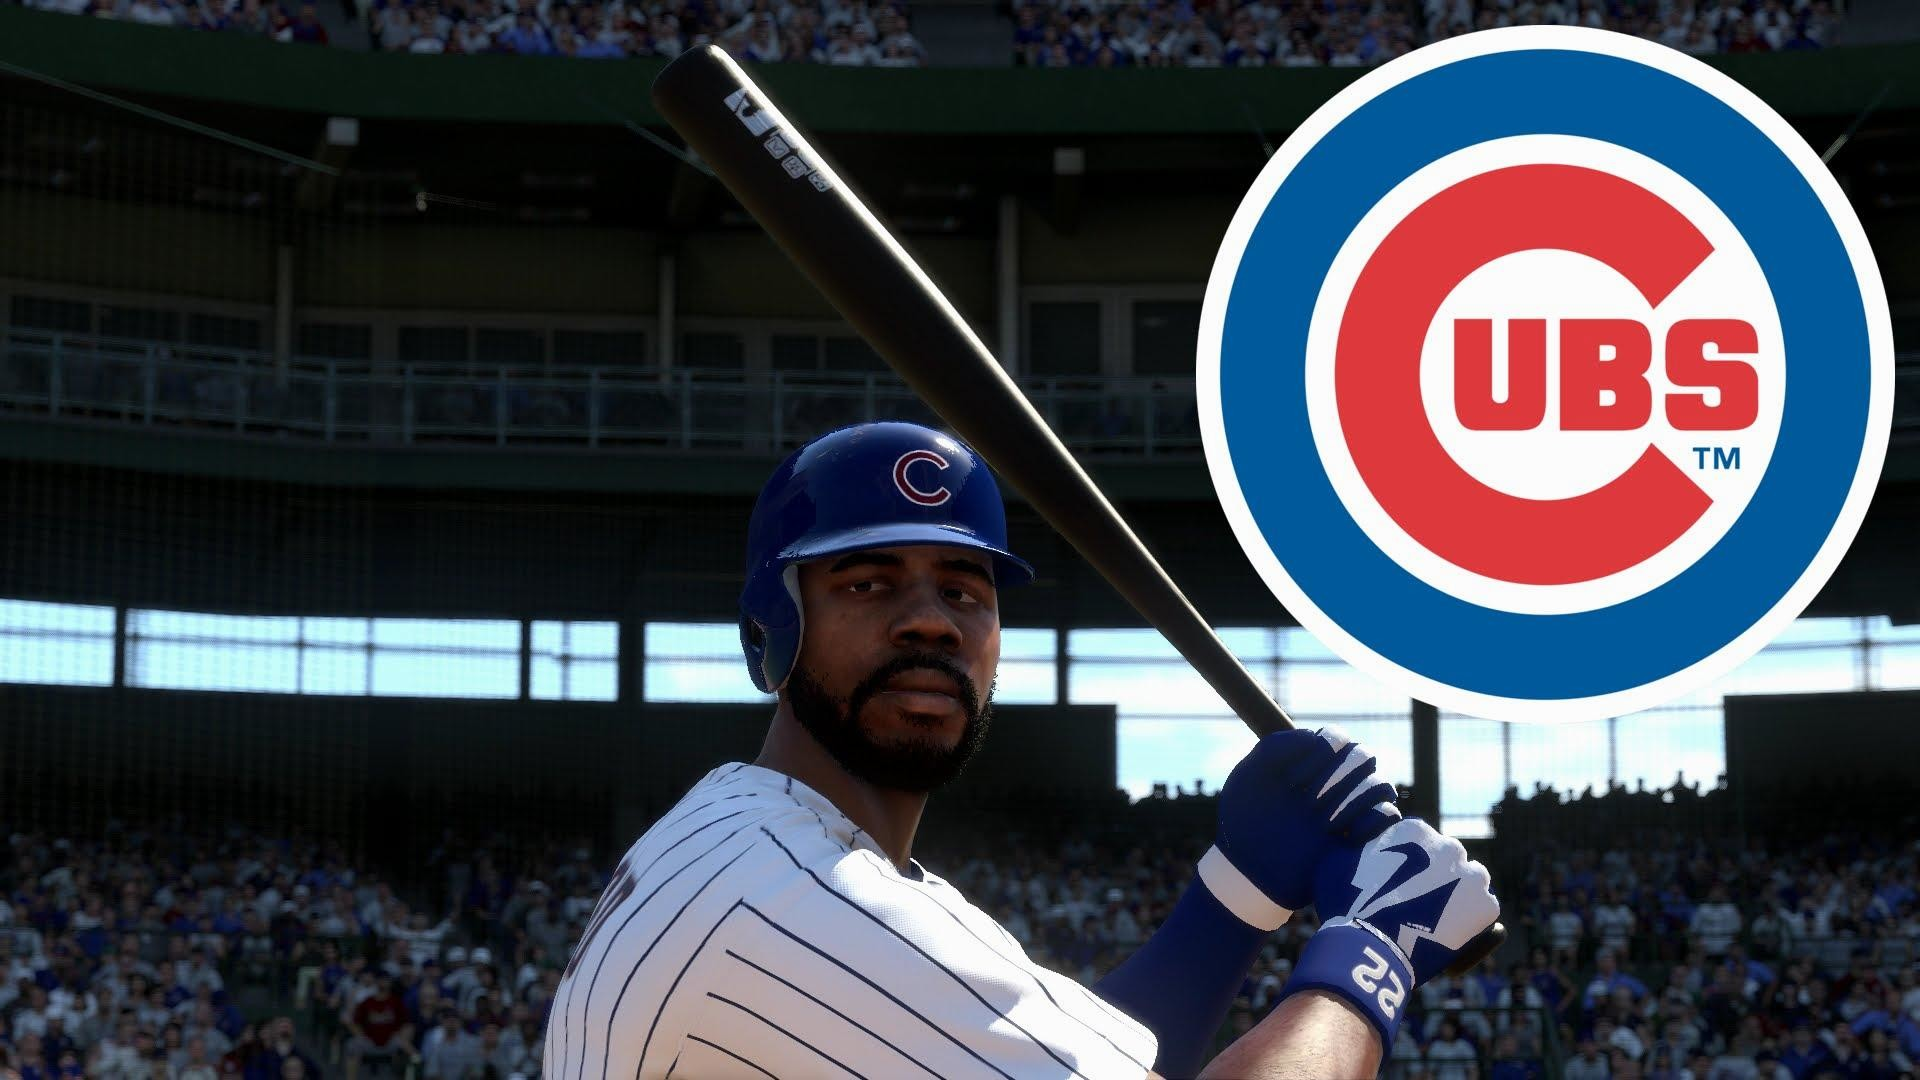 wallpaper.wiki-Wallpapers-HD-Chicago-Cubs-Backgrounds-PIC-